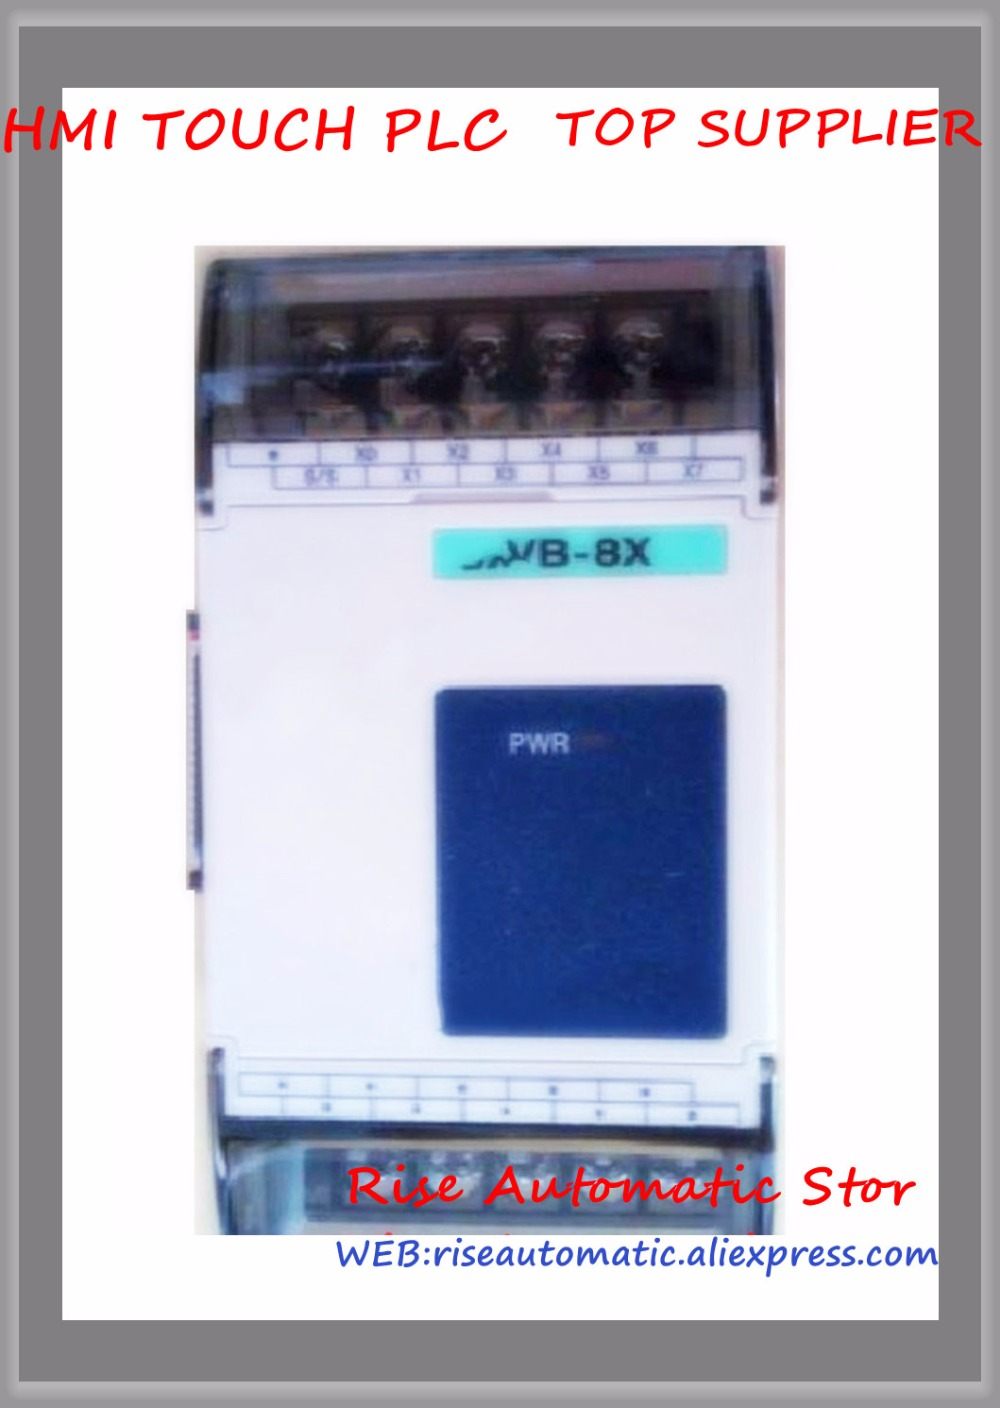 VB-8X-C PLC New Original 24VDC 8 point input Expansion Module отвертка шлицевая sl6 38 vettler